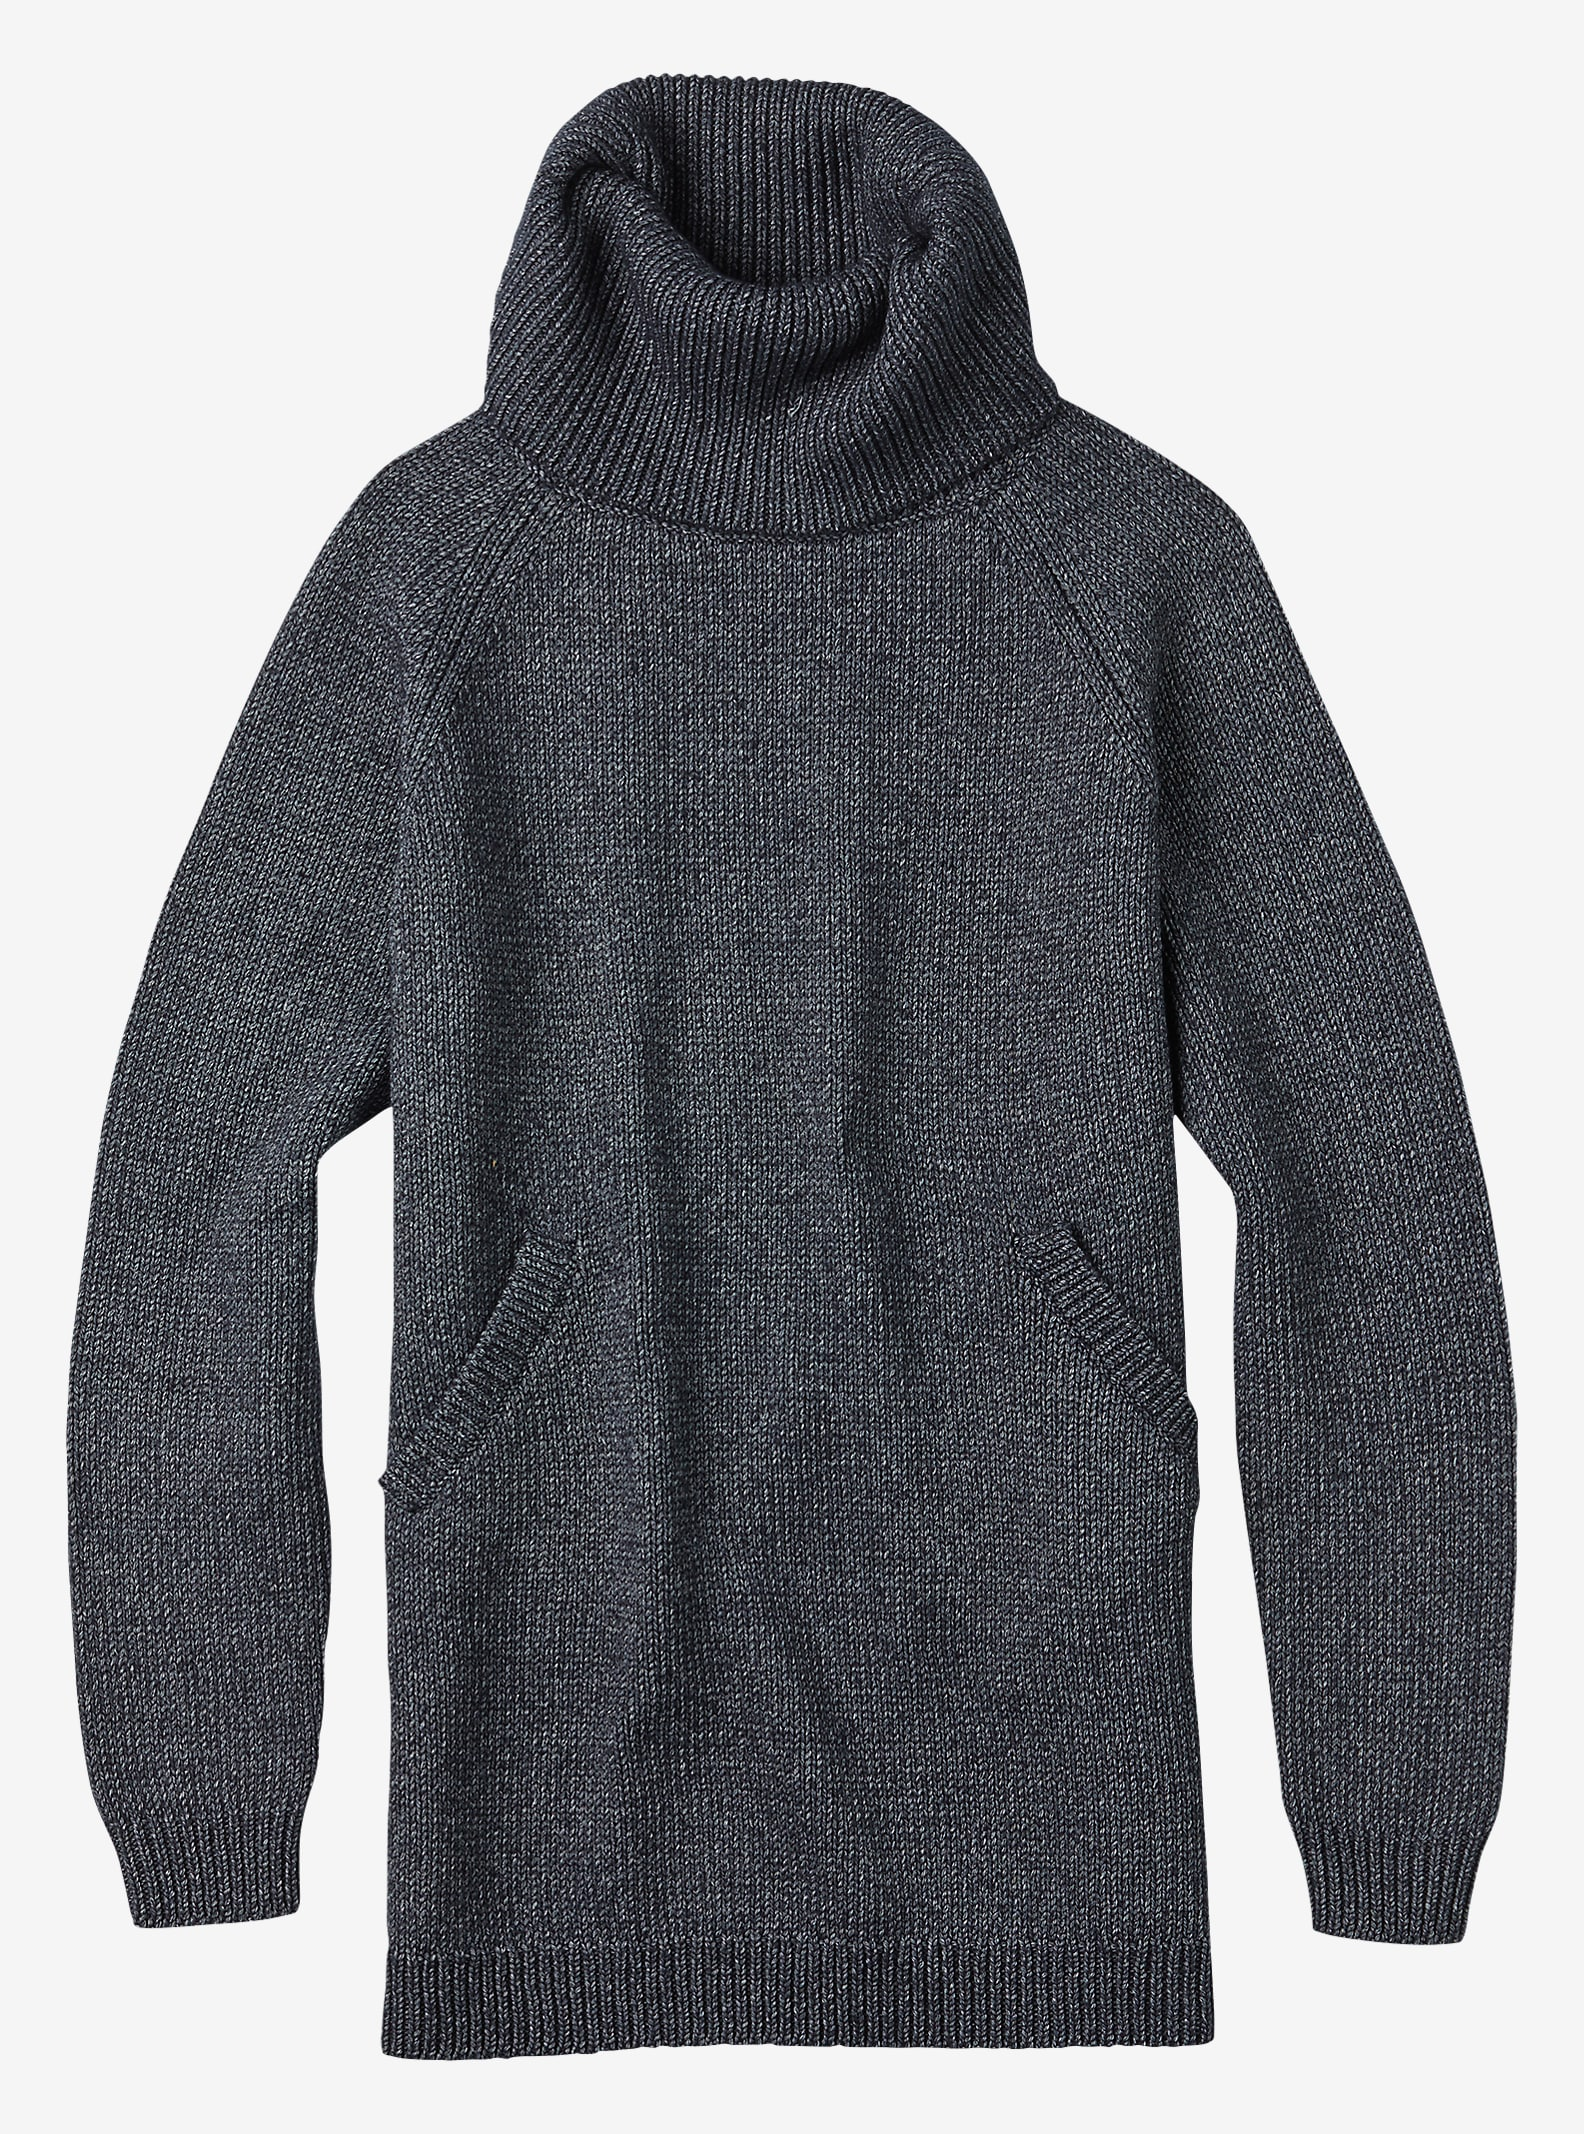 Burton Avalanche Sweater shown in True Blue Heather